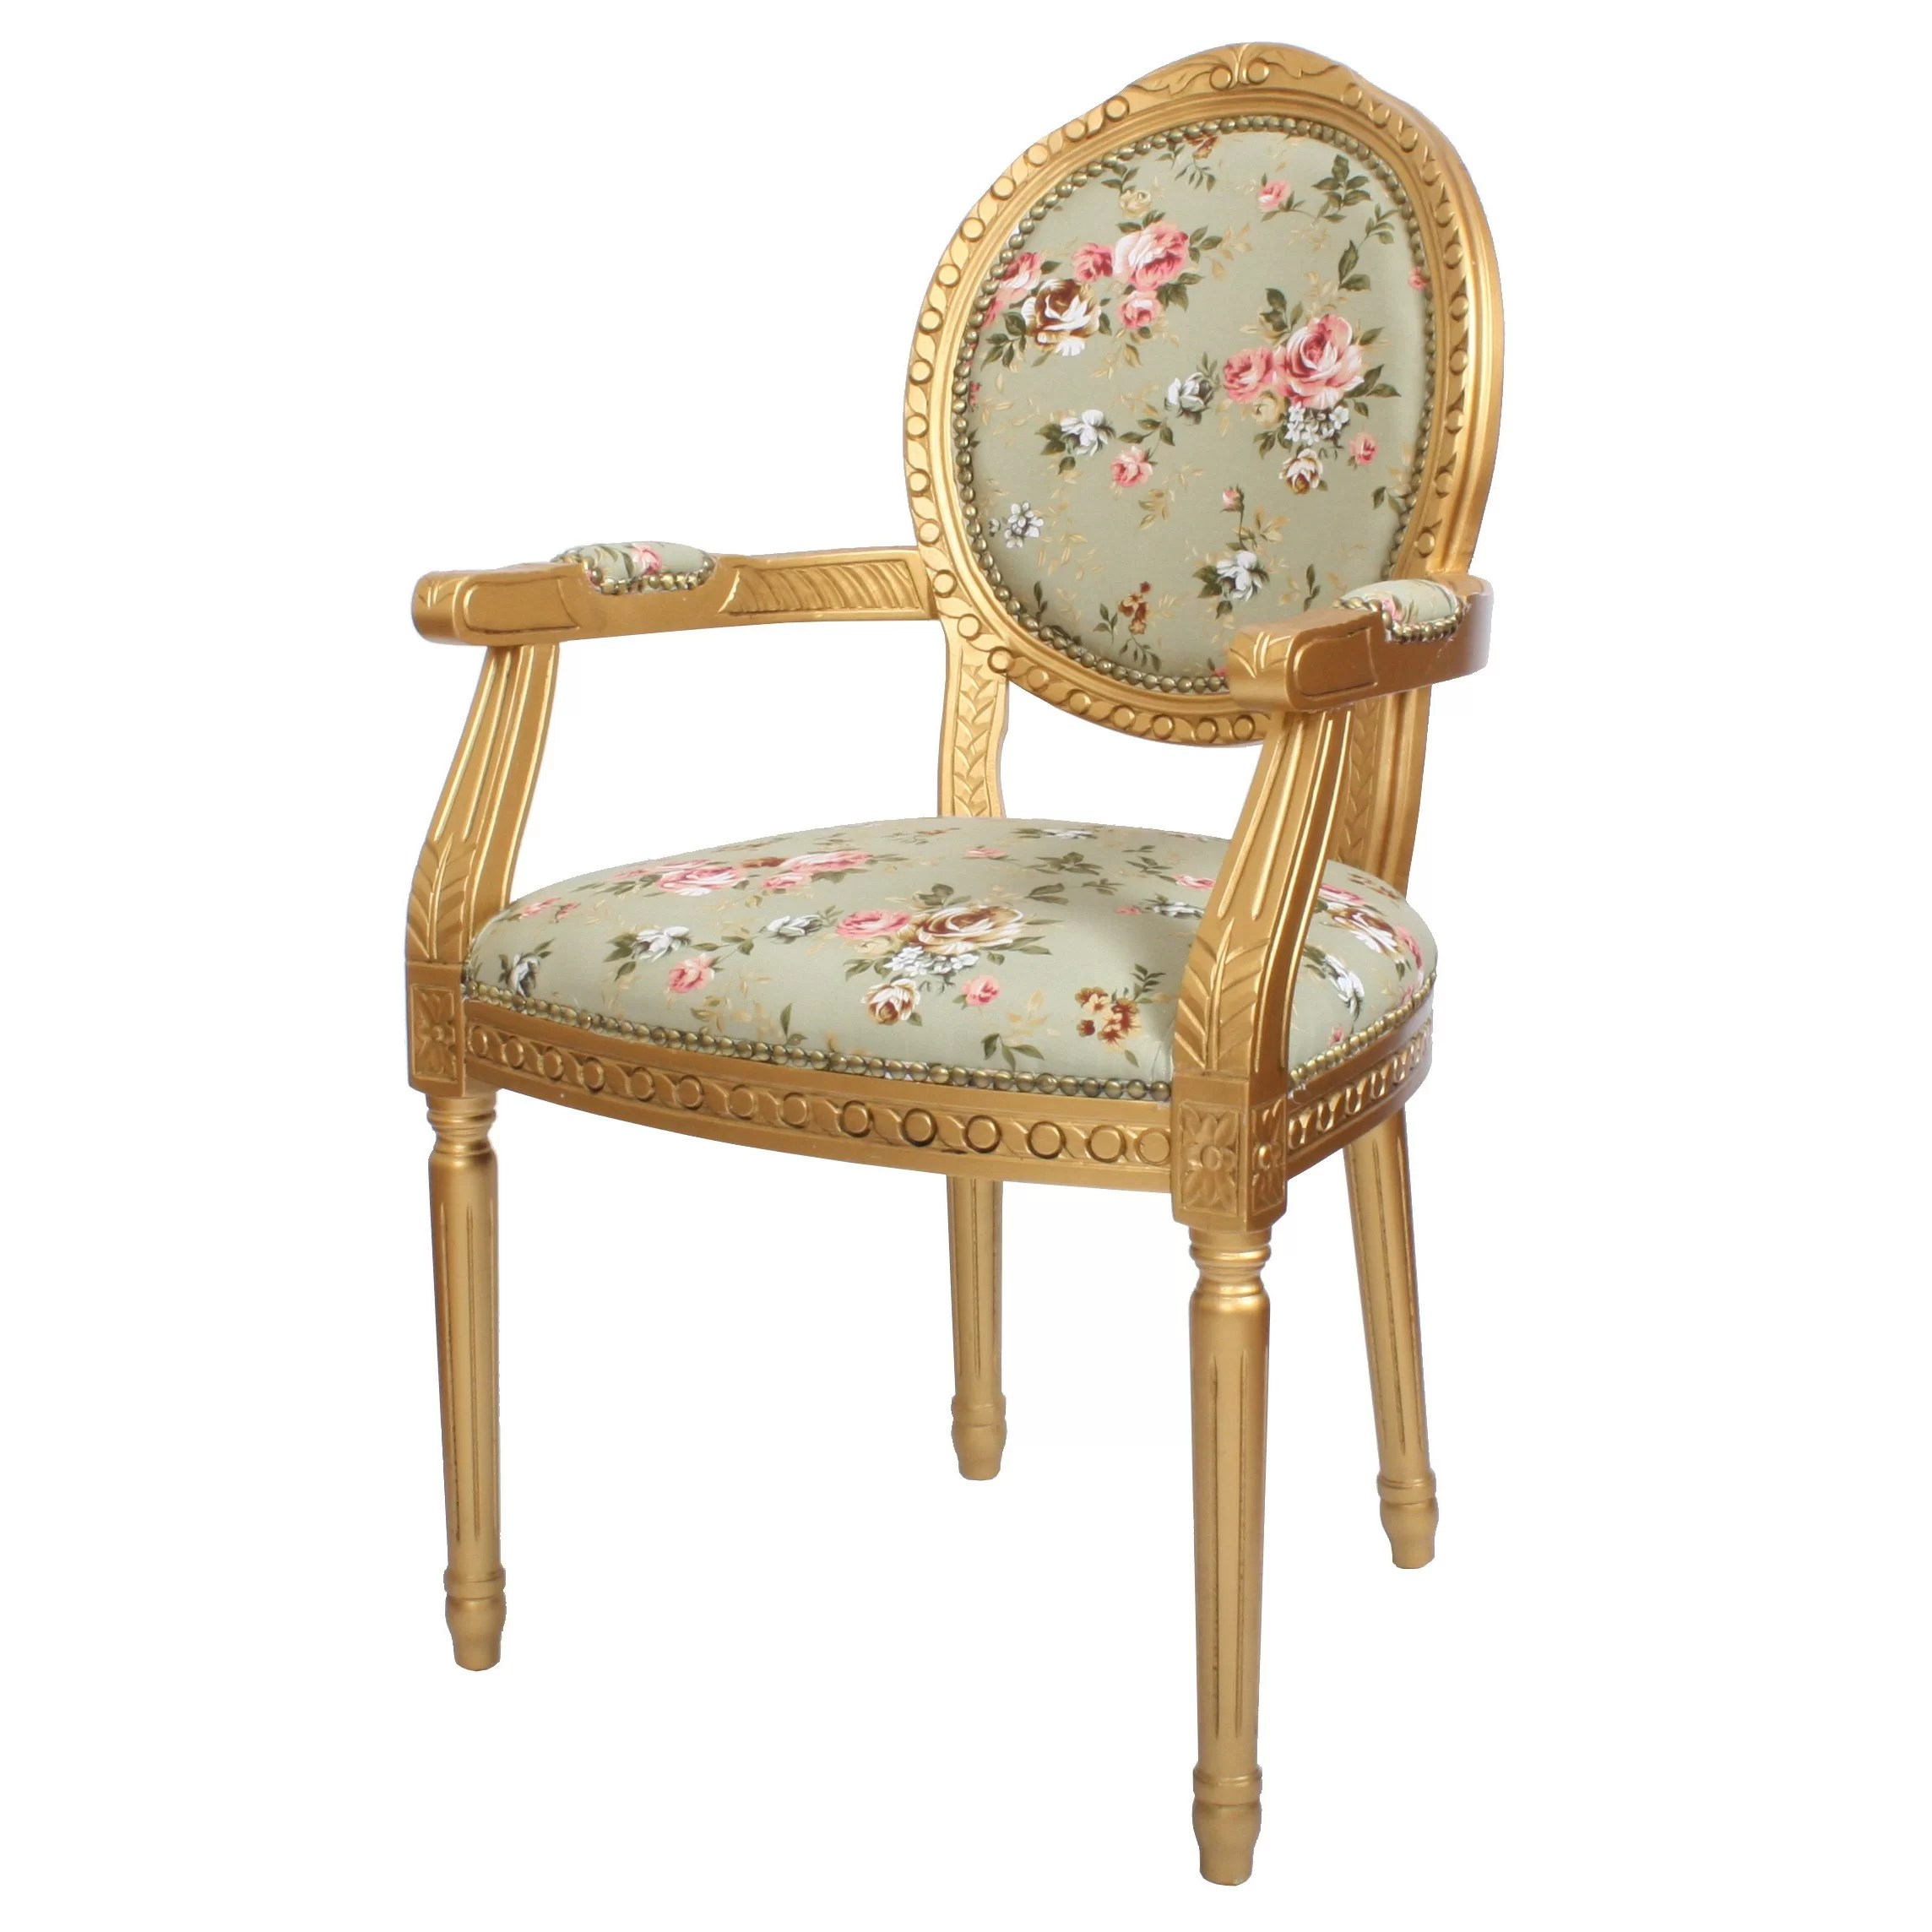 floral upholstered chair ikea tobias review derry 39s louis dining and reviews